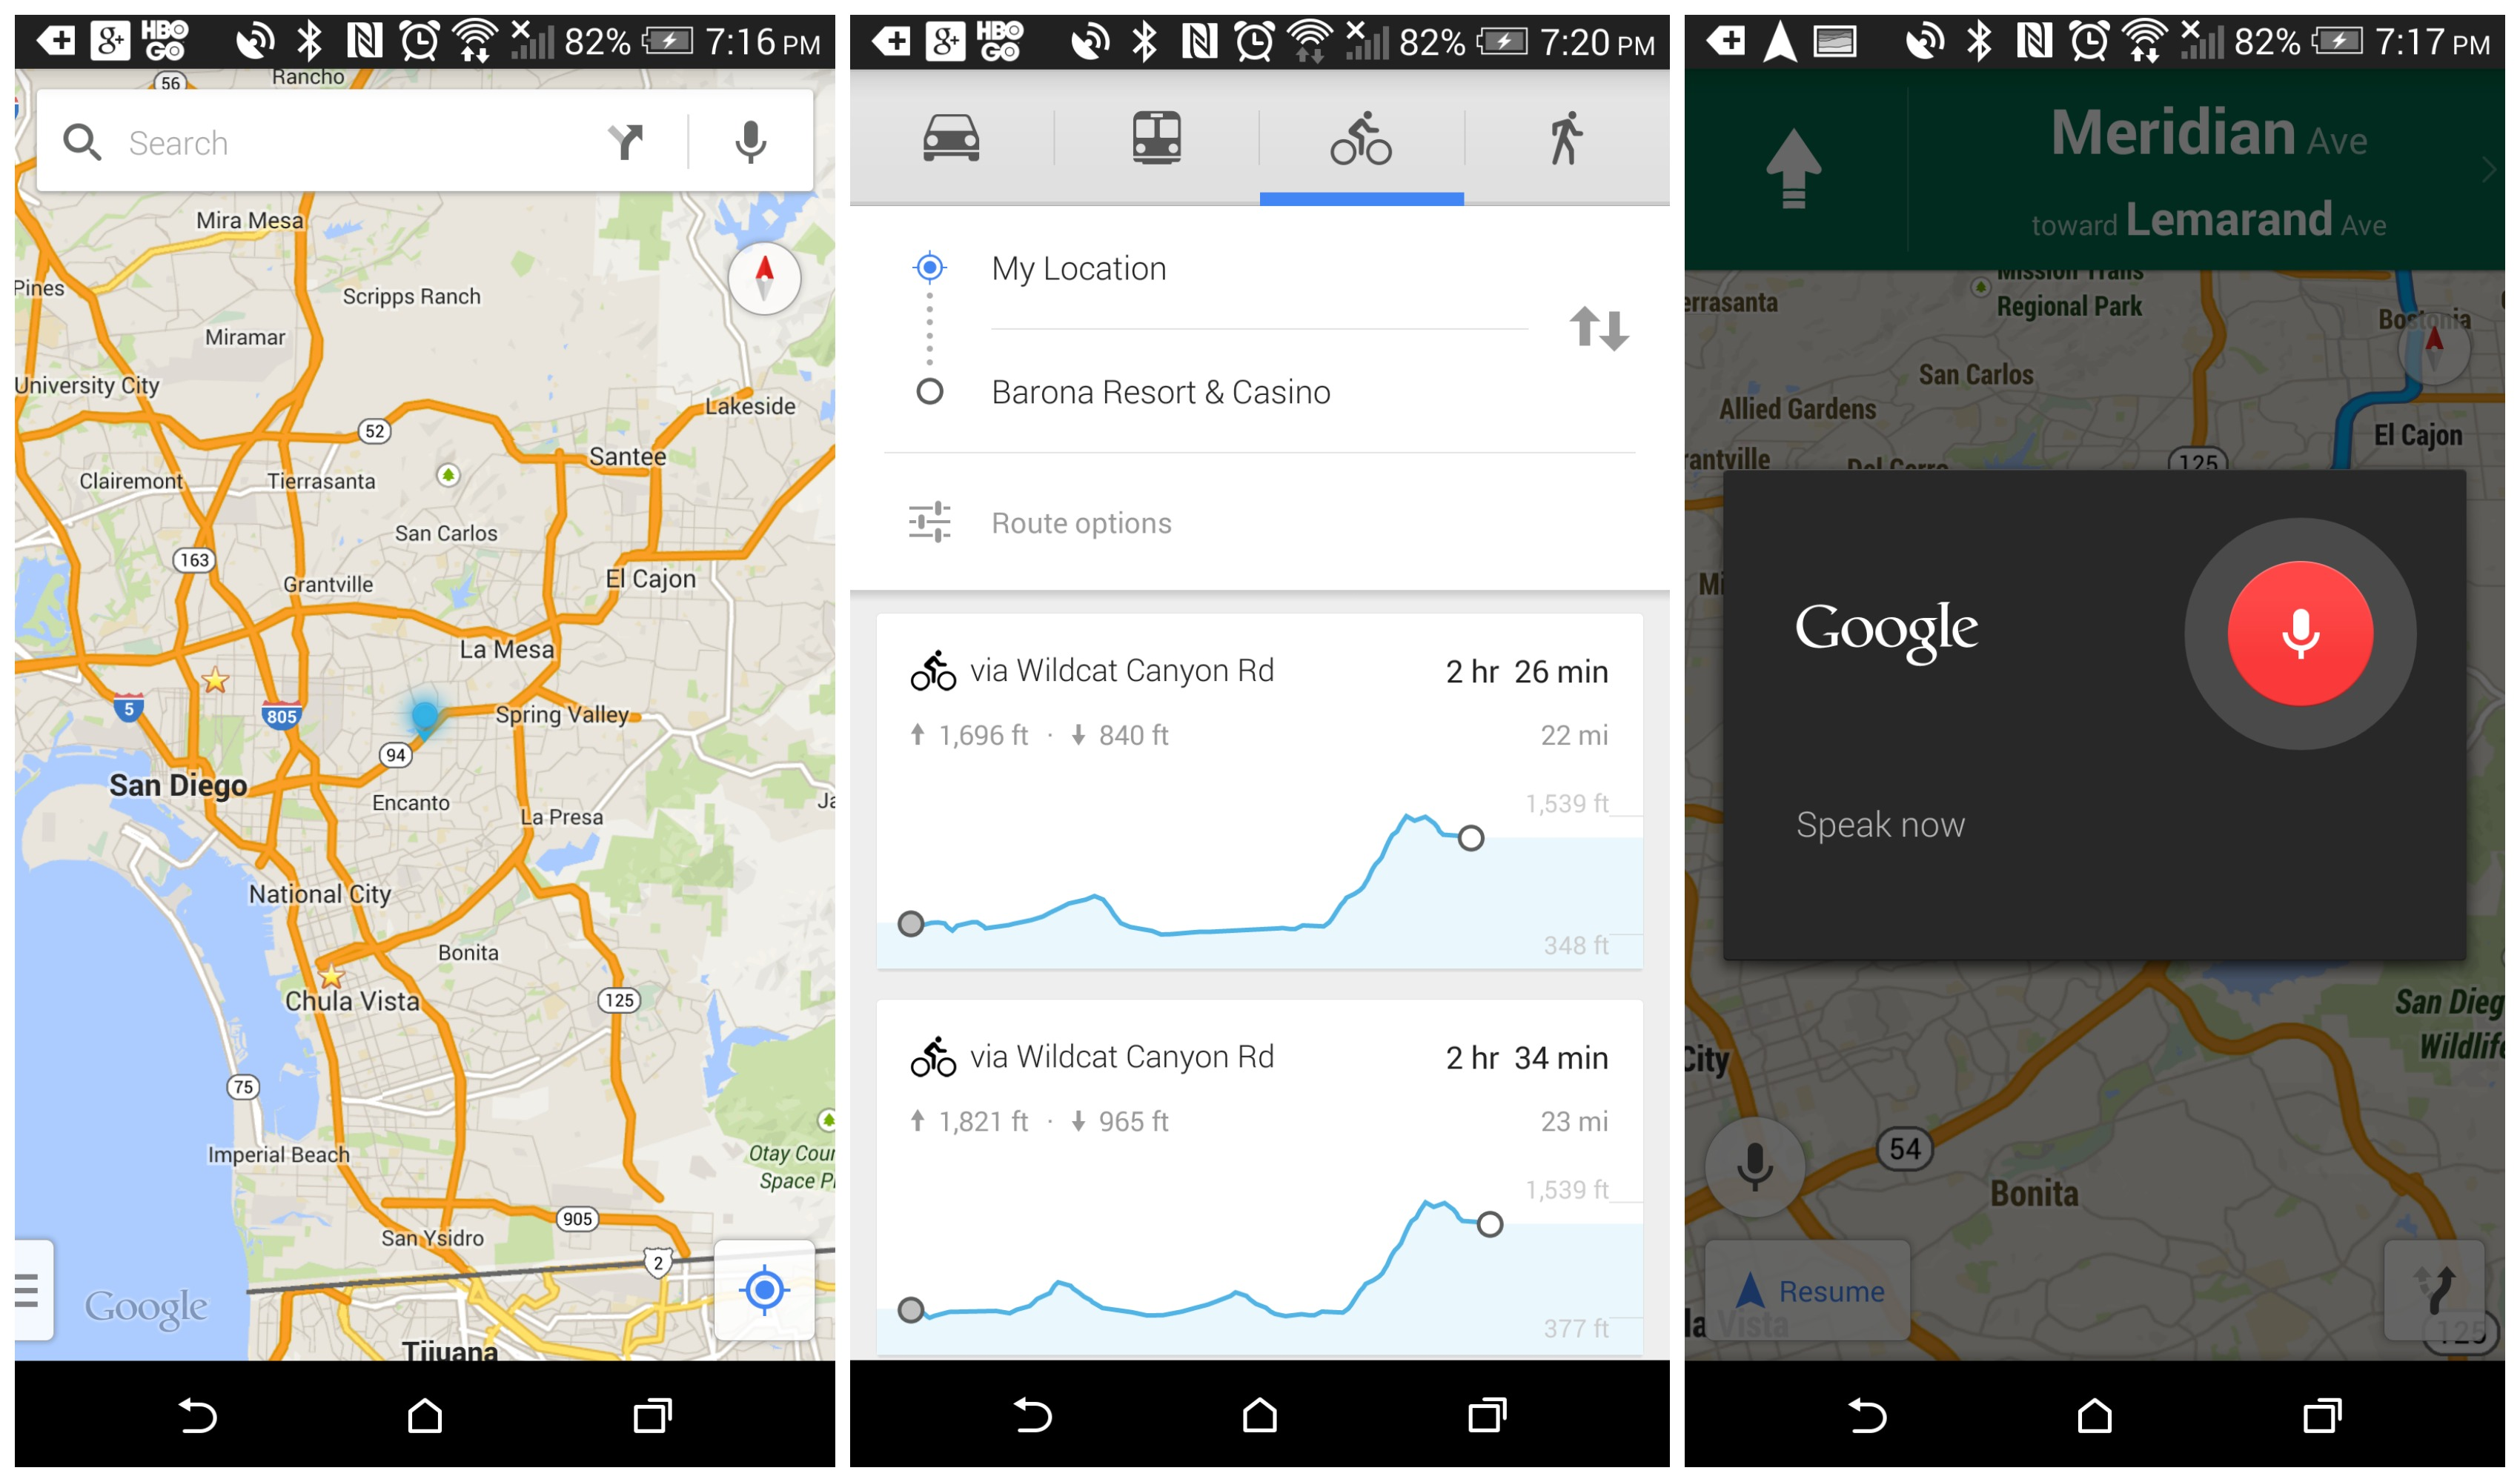 DOWNLOAD: Google Maps 8.2 update with voice controls on google earth update 2014, google maps updated 2012, google maps street view, google search, google sky,